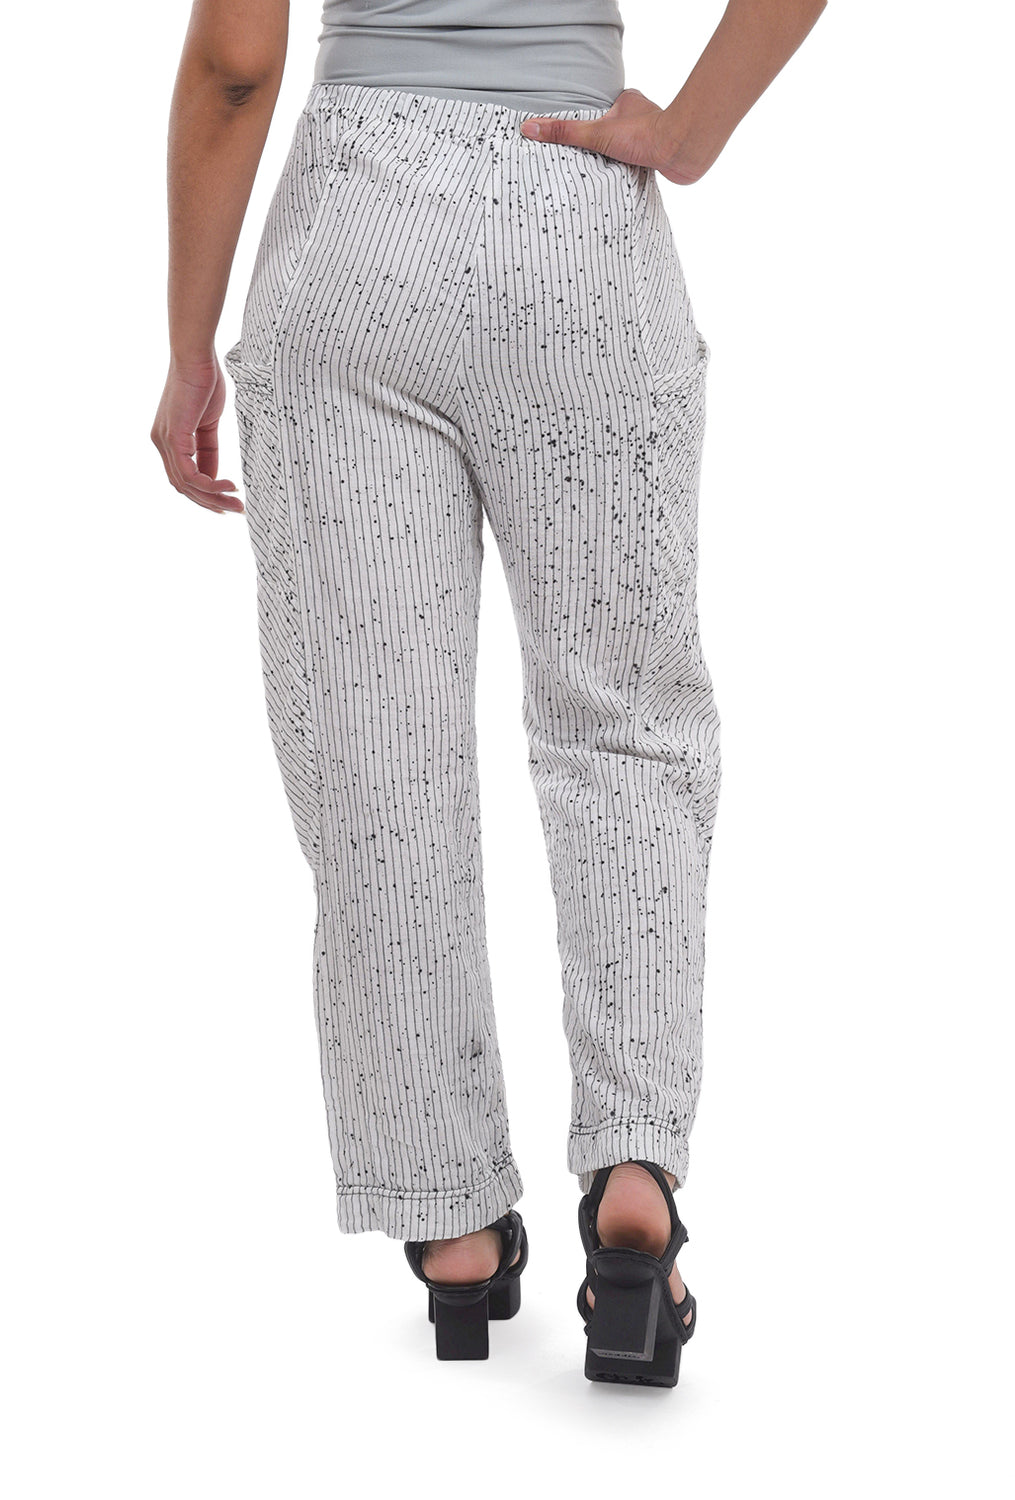 Cynthia Ashby Splatter Stripe Pants, White